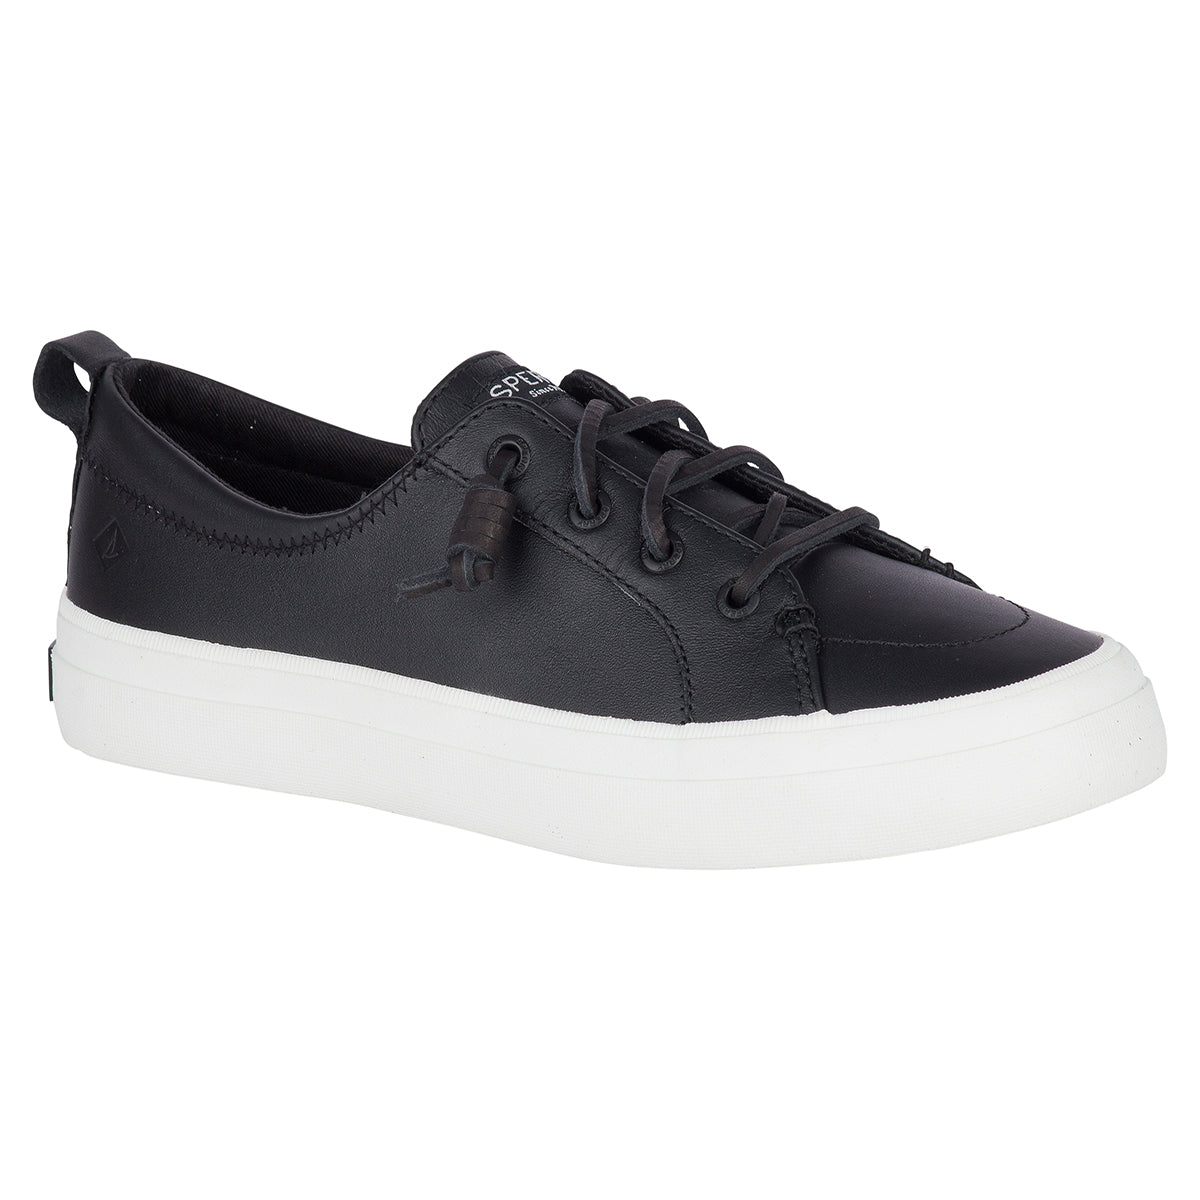 Sperry Women's Vulcanized Crest Vibe Leather Shoes